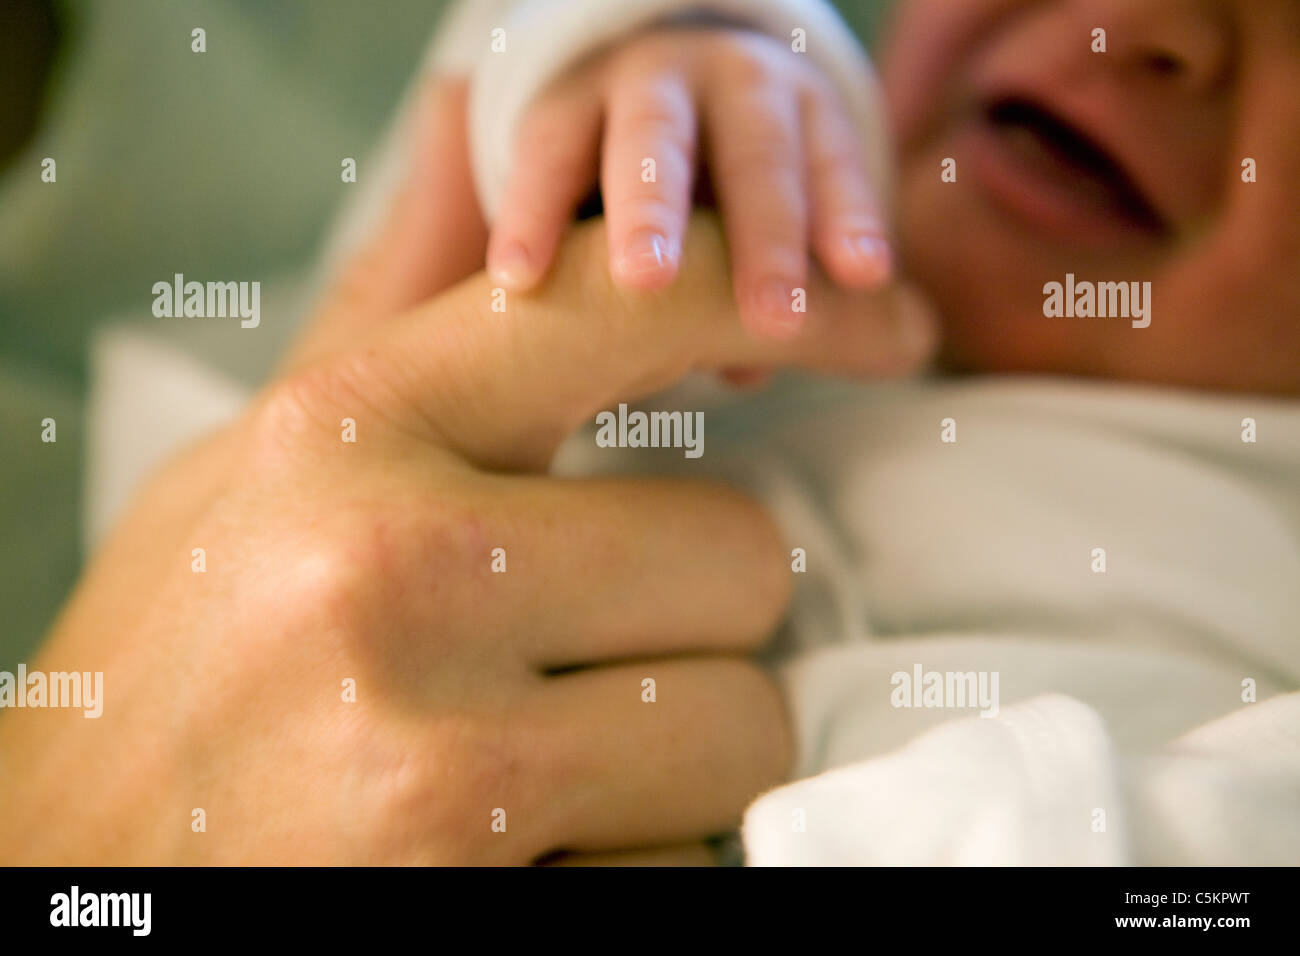 Newborn's hand on mothers hand.  Newborn baby hand.  Crying baby holding mothers hand. - Stock Image